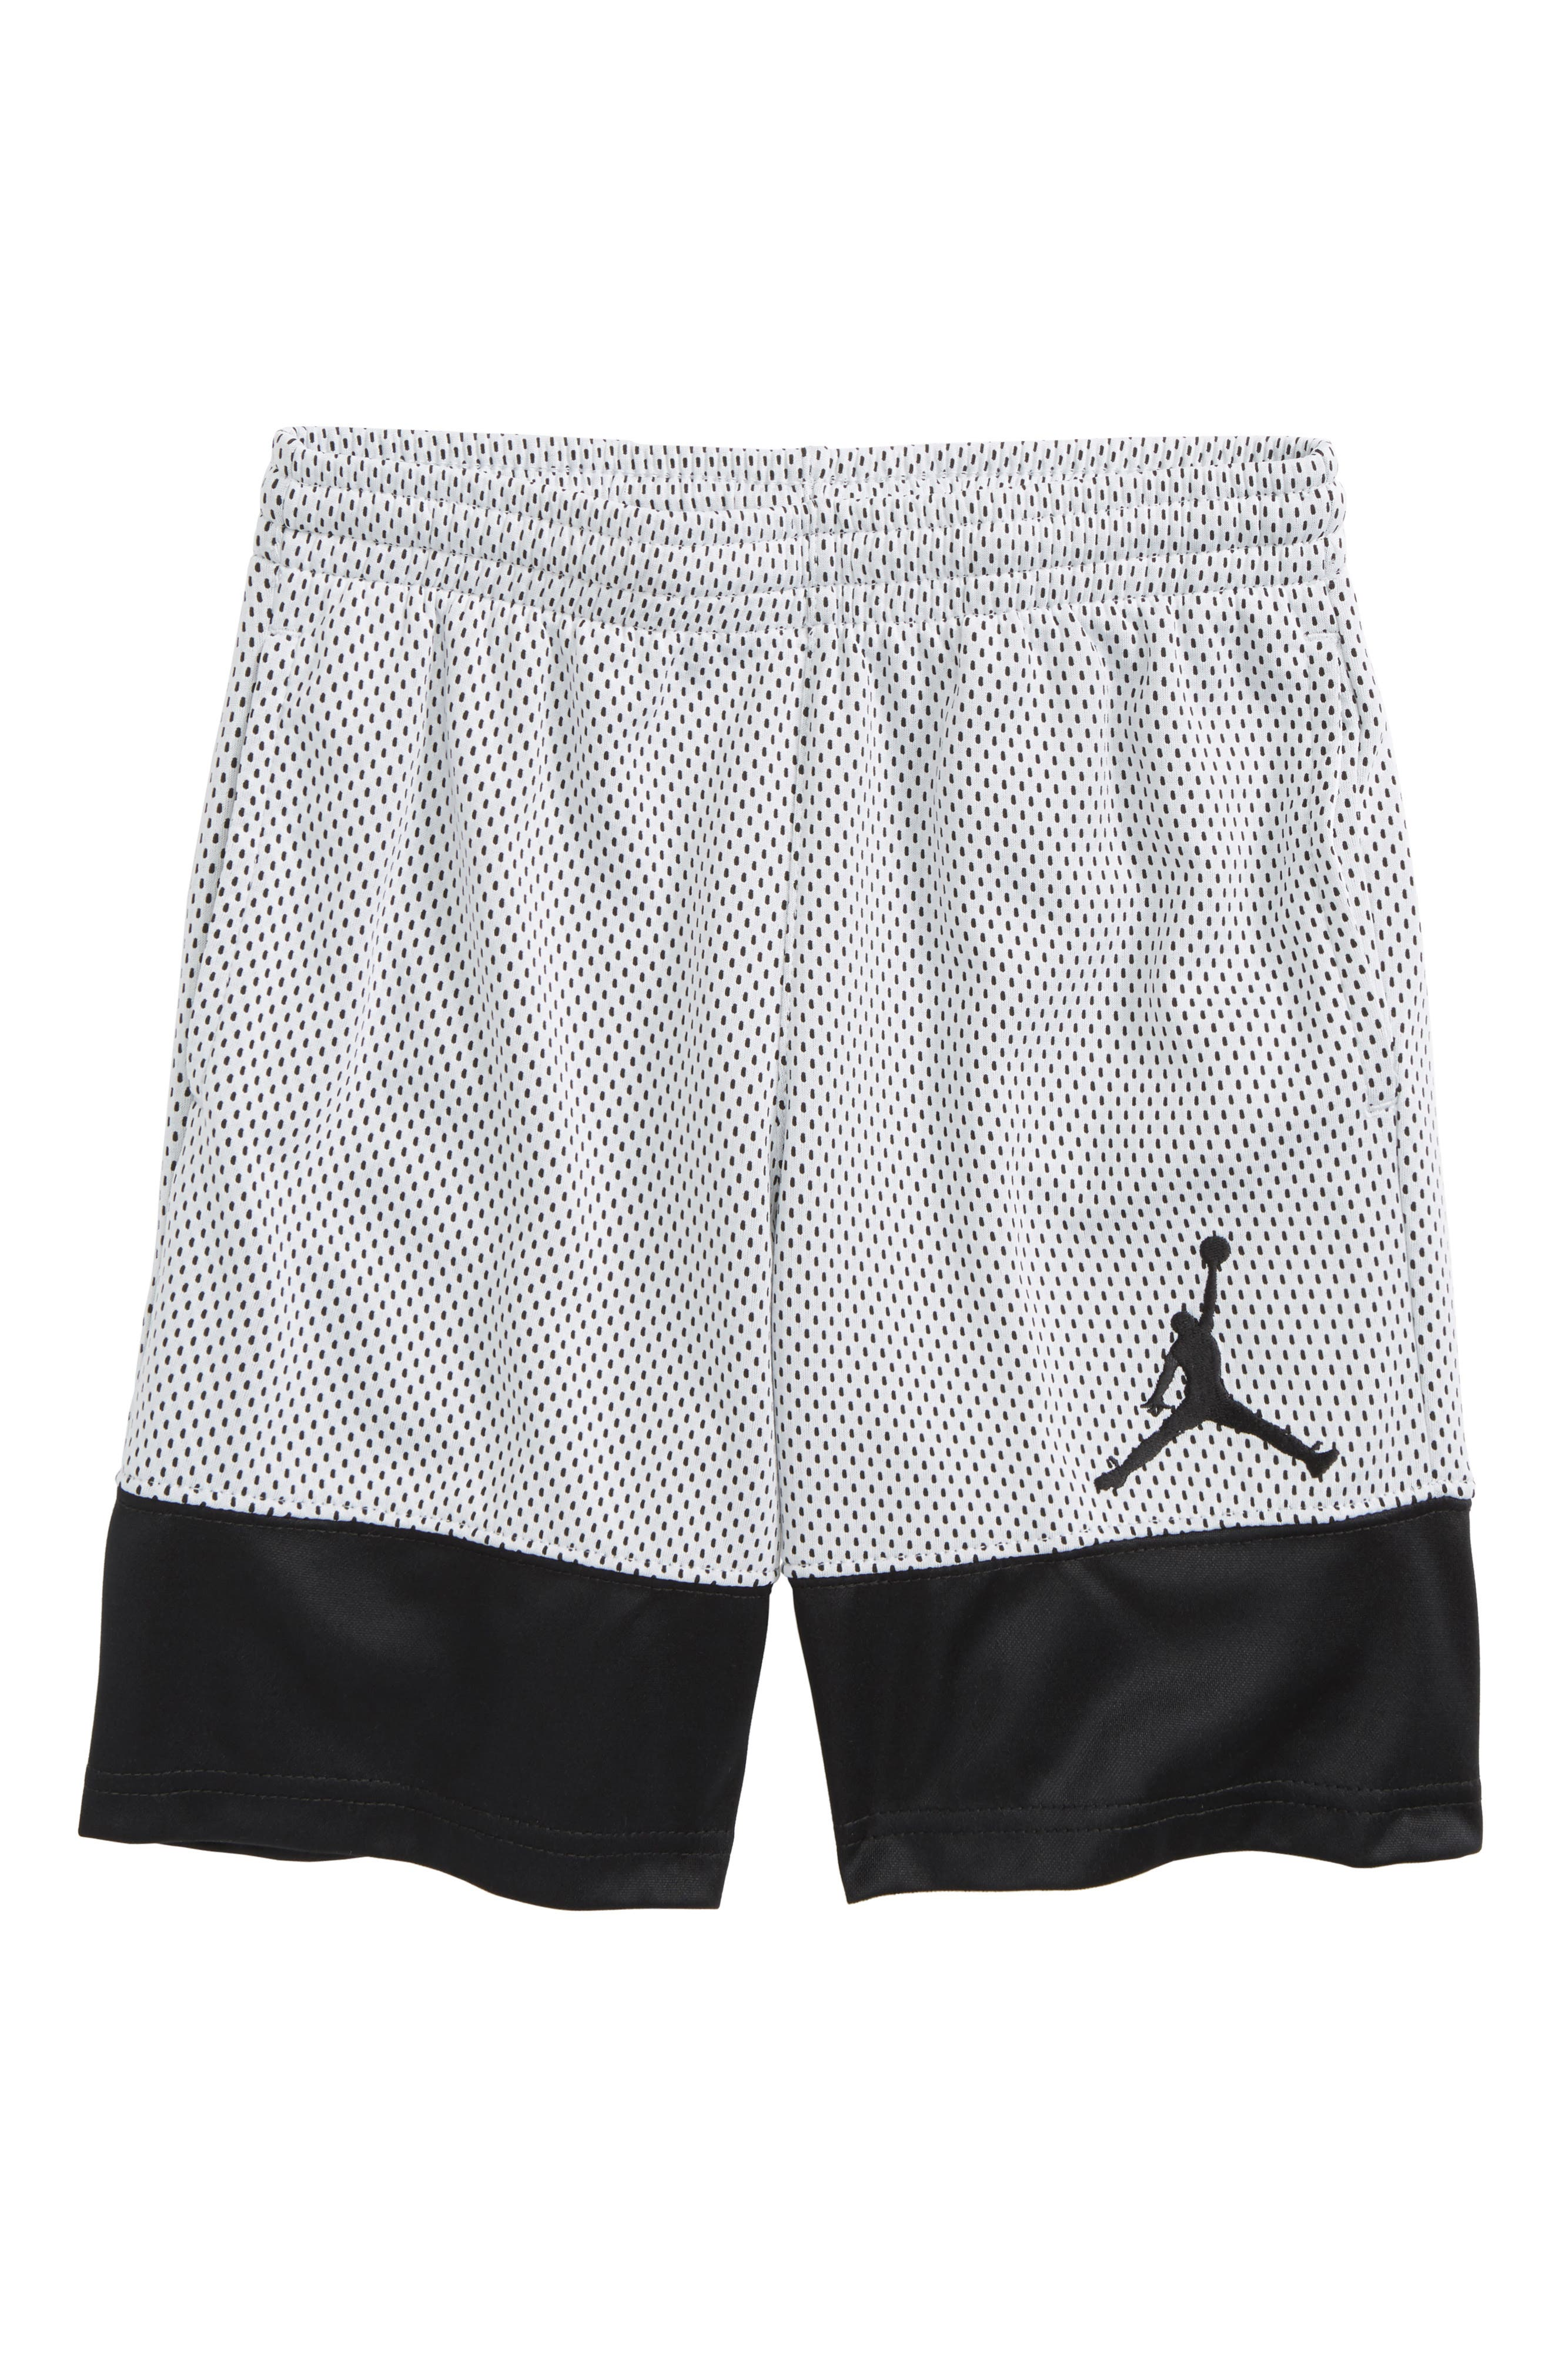 Jordan '90s Mesh Shorts,                         Main,                         color, 001